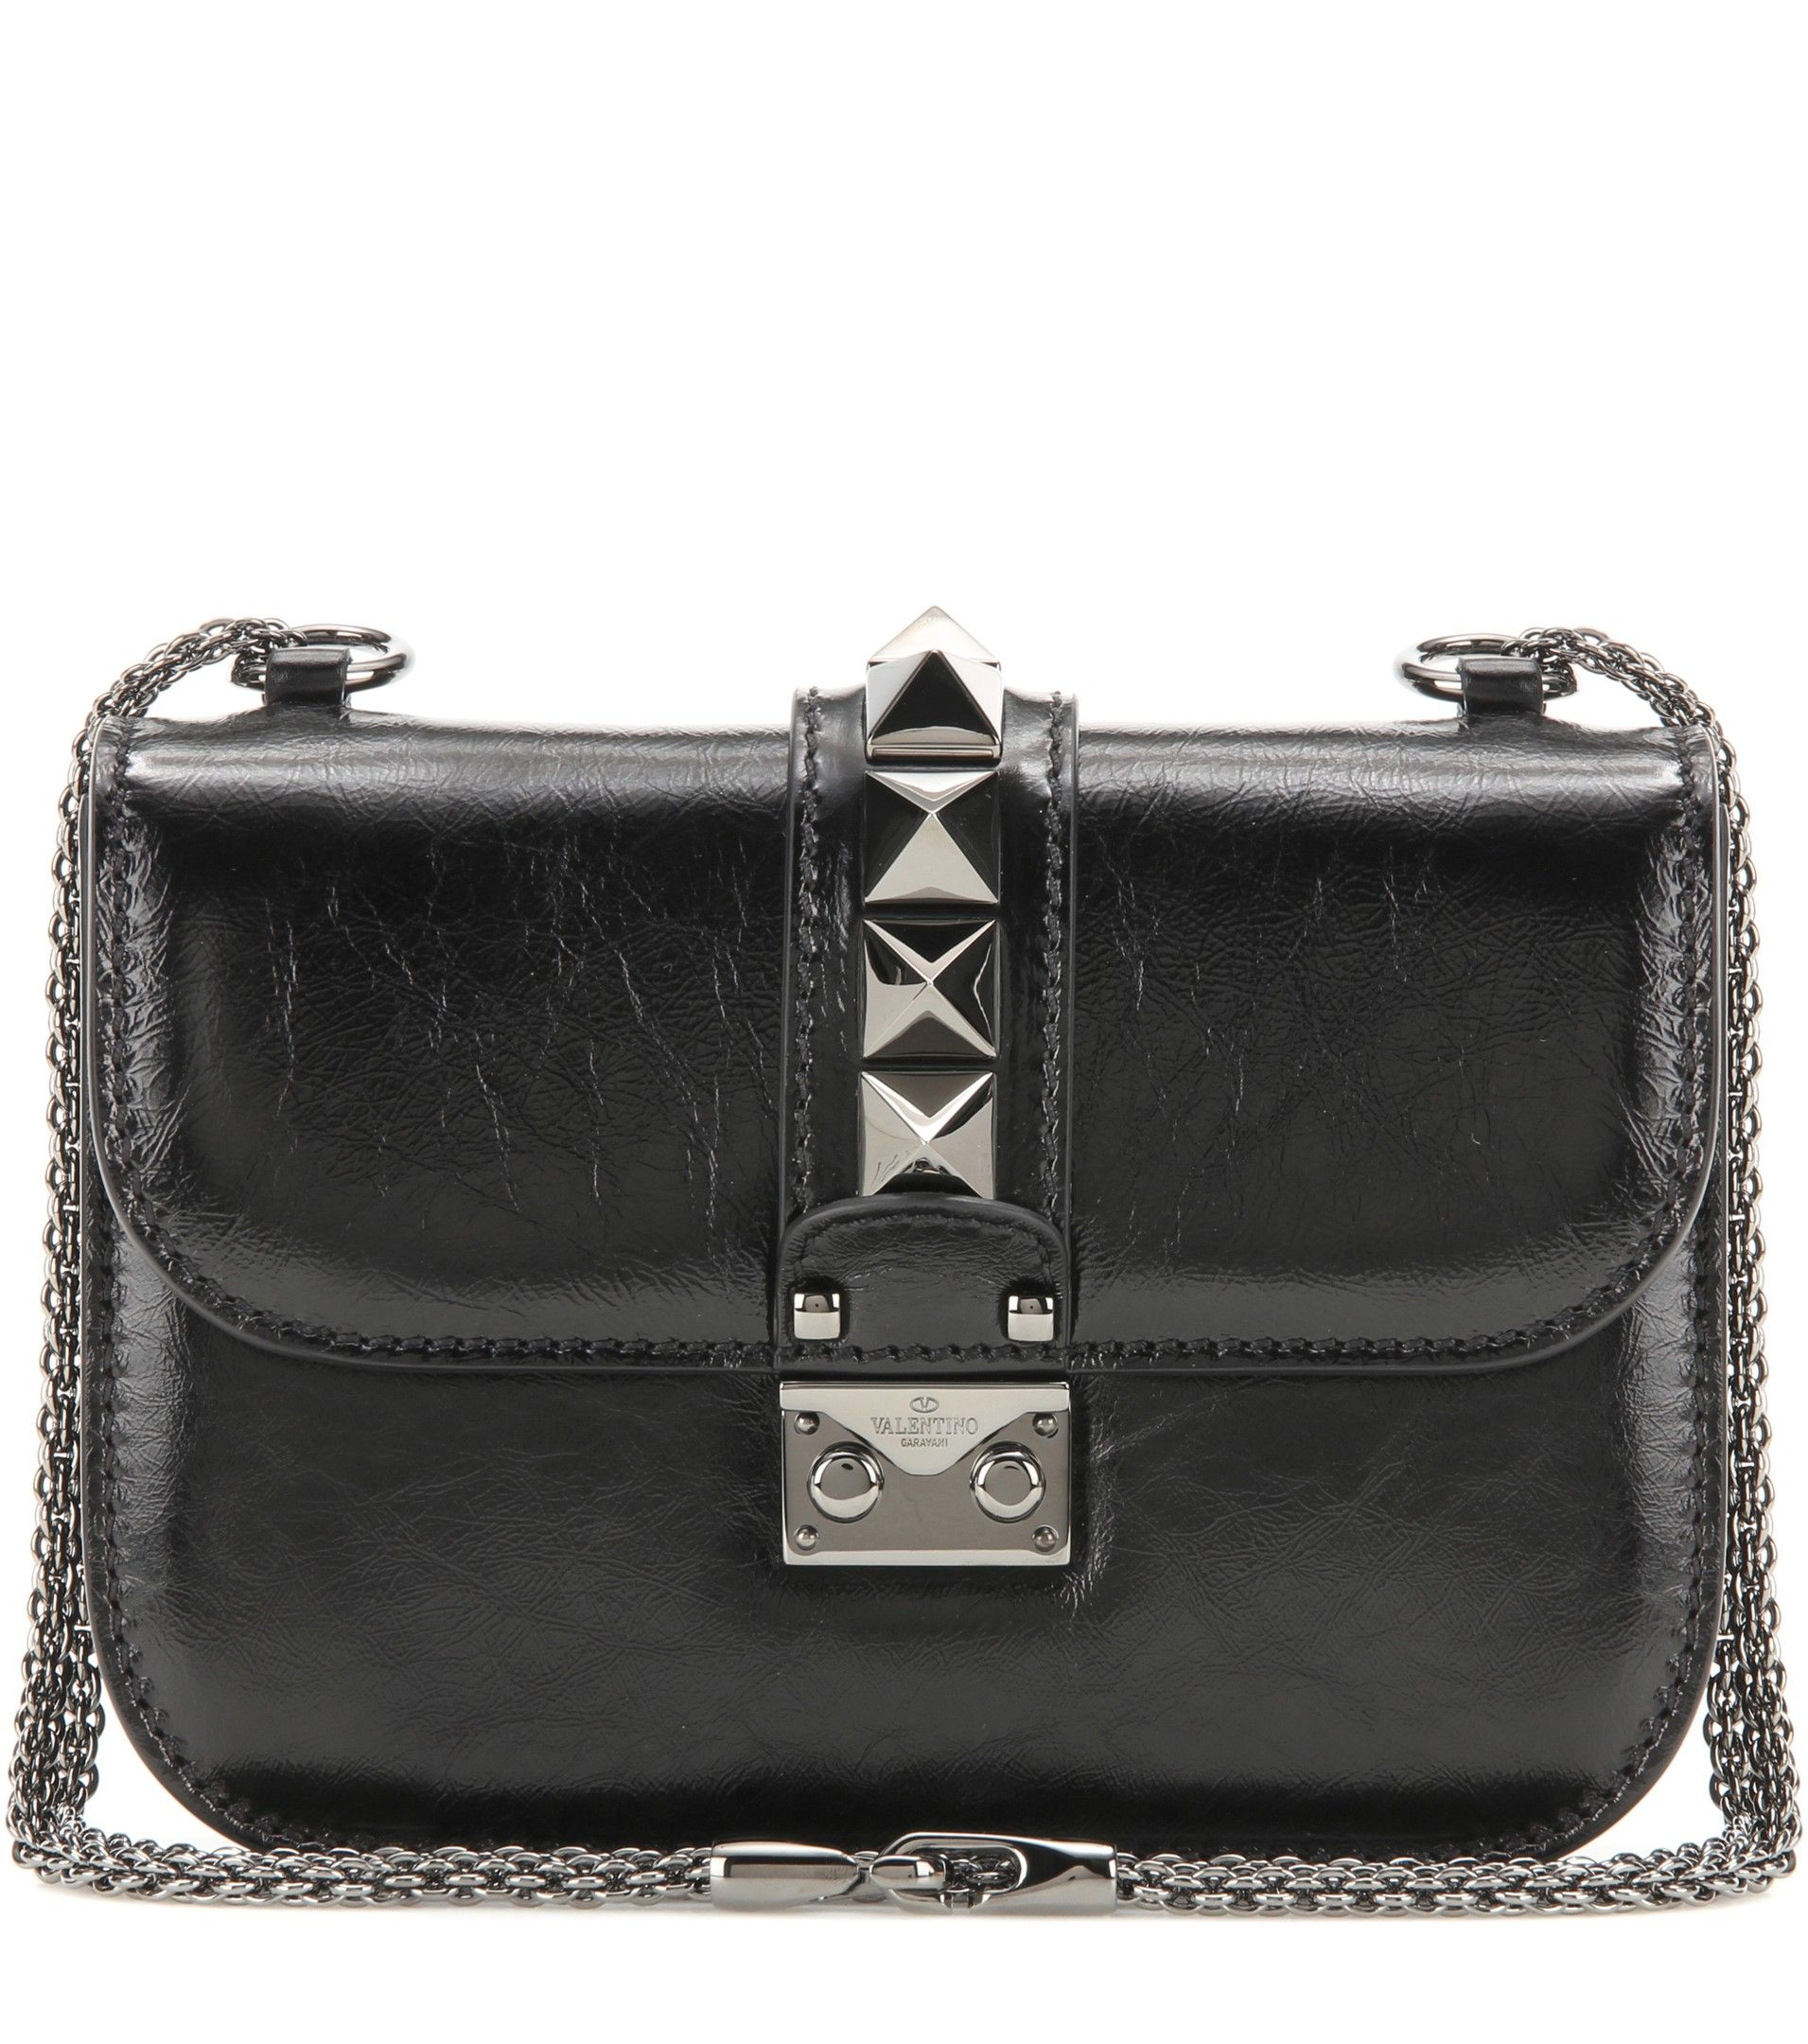 6a8730ce838 Valentino - Lock Noir Small leather shoulder bag - We love the compact  shape and signature